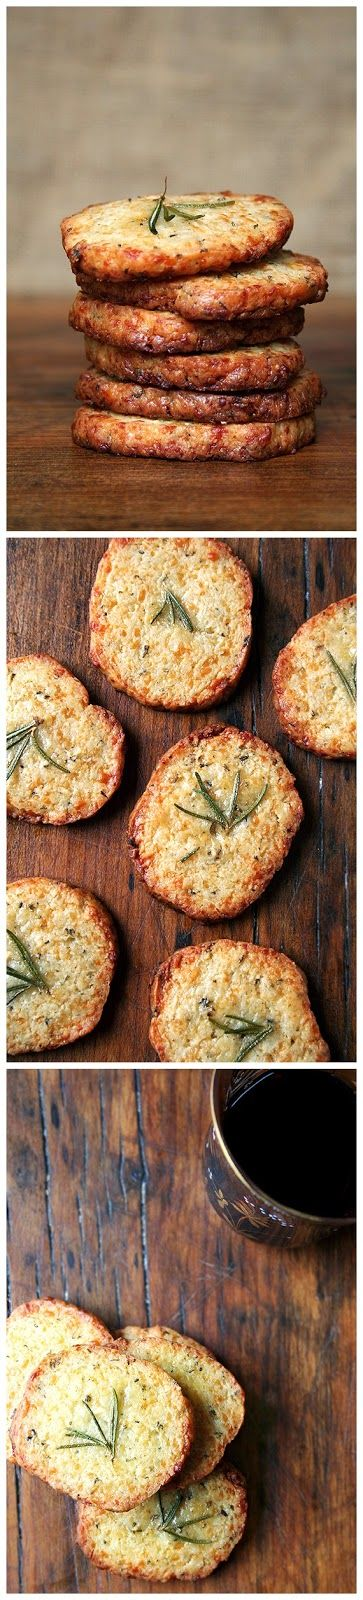 BeGgINinG Quick    and max Crackers IN Recipes  Parmesan Rosemary uk Parmesan tHe Recipe air cheap